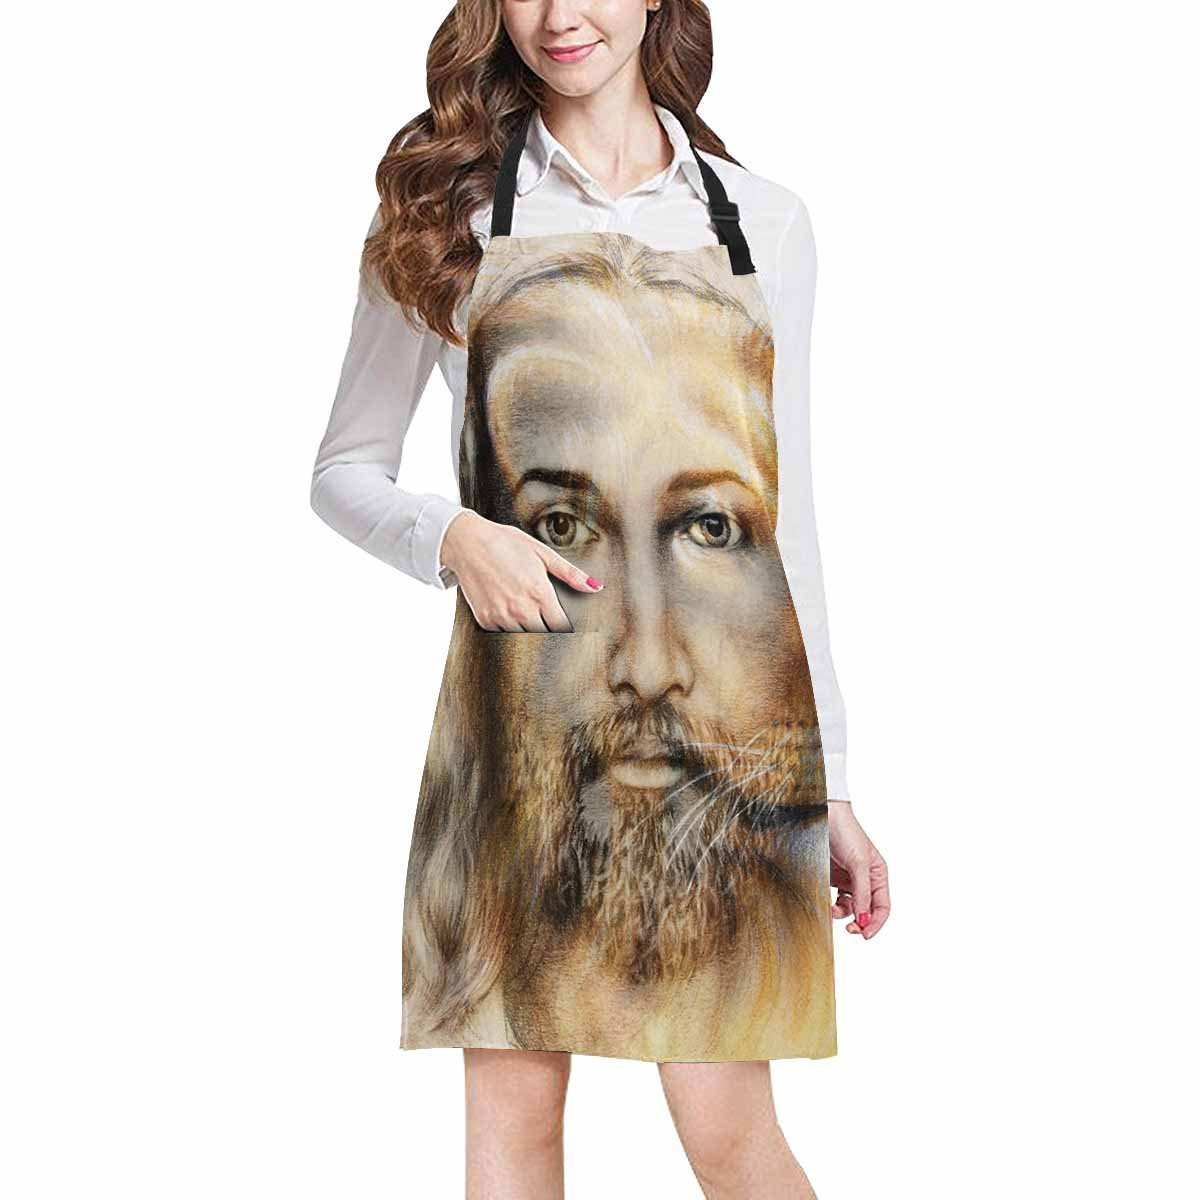 InterestPrint Abstract Blessed Jesus with Lion Home Kitchen Apron for Women Men with Pockets, Unisex Adjustable Bib Apron for Cooking Baking Gardening, Large Size